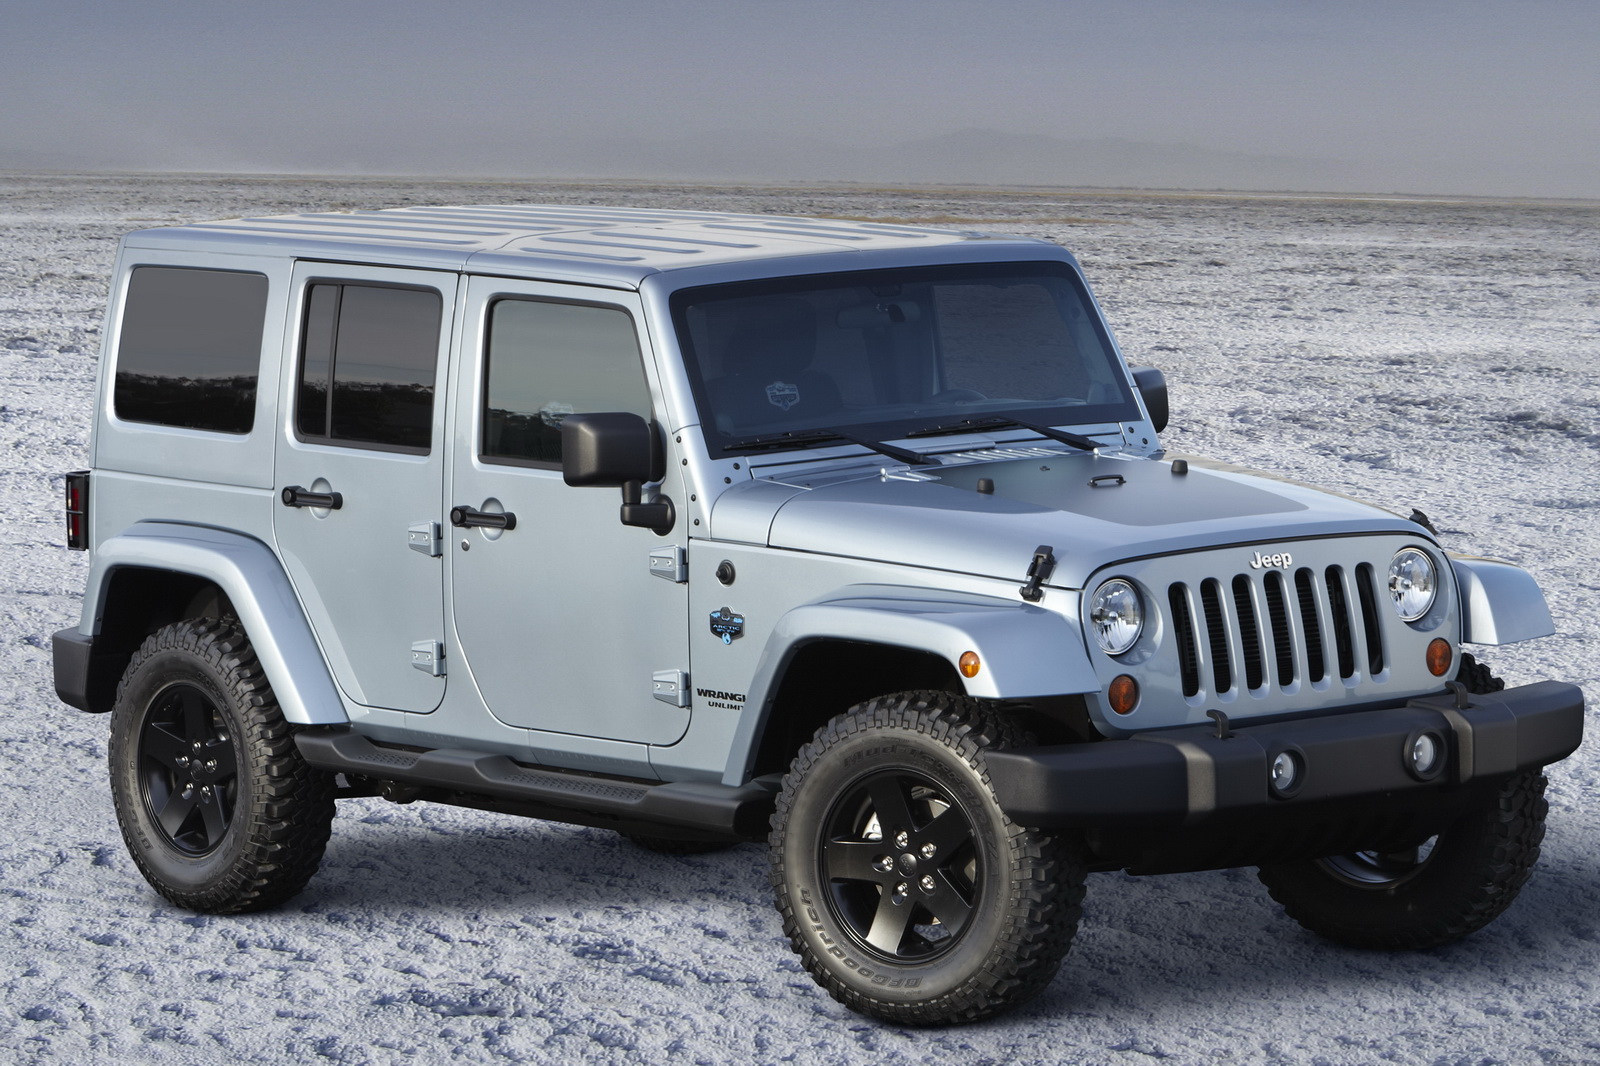 Jeep Rubicon Seats >> 2012 Jeep Wrangler and Liberty SUV Arctic Specials – A Review | machinespider.com